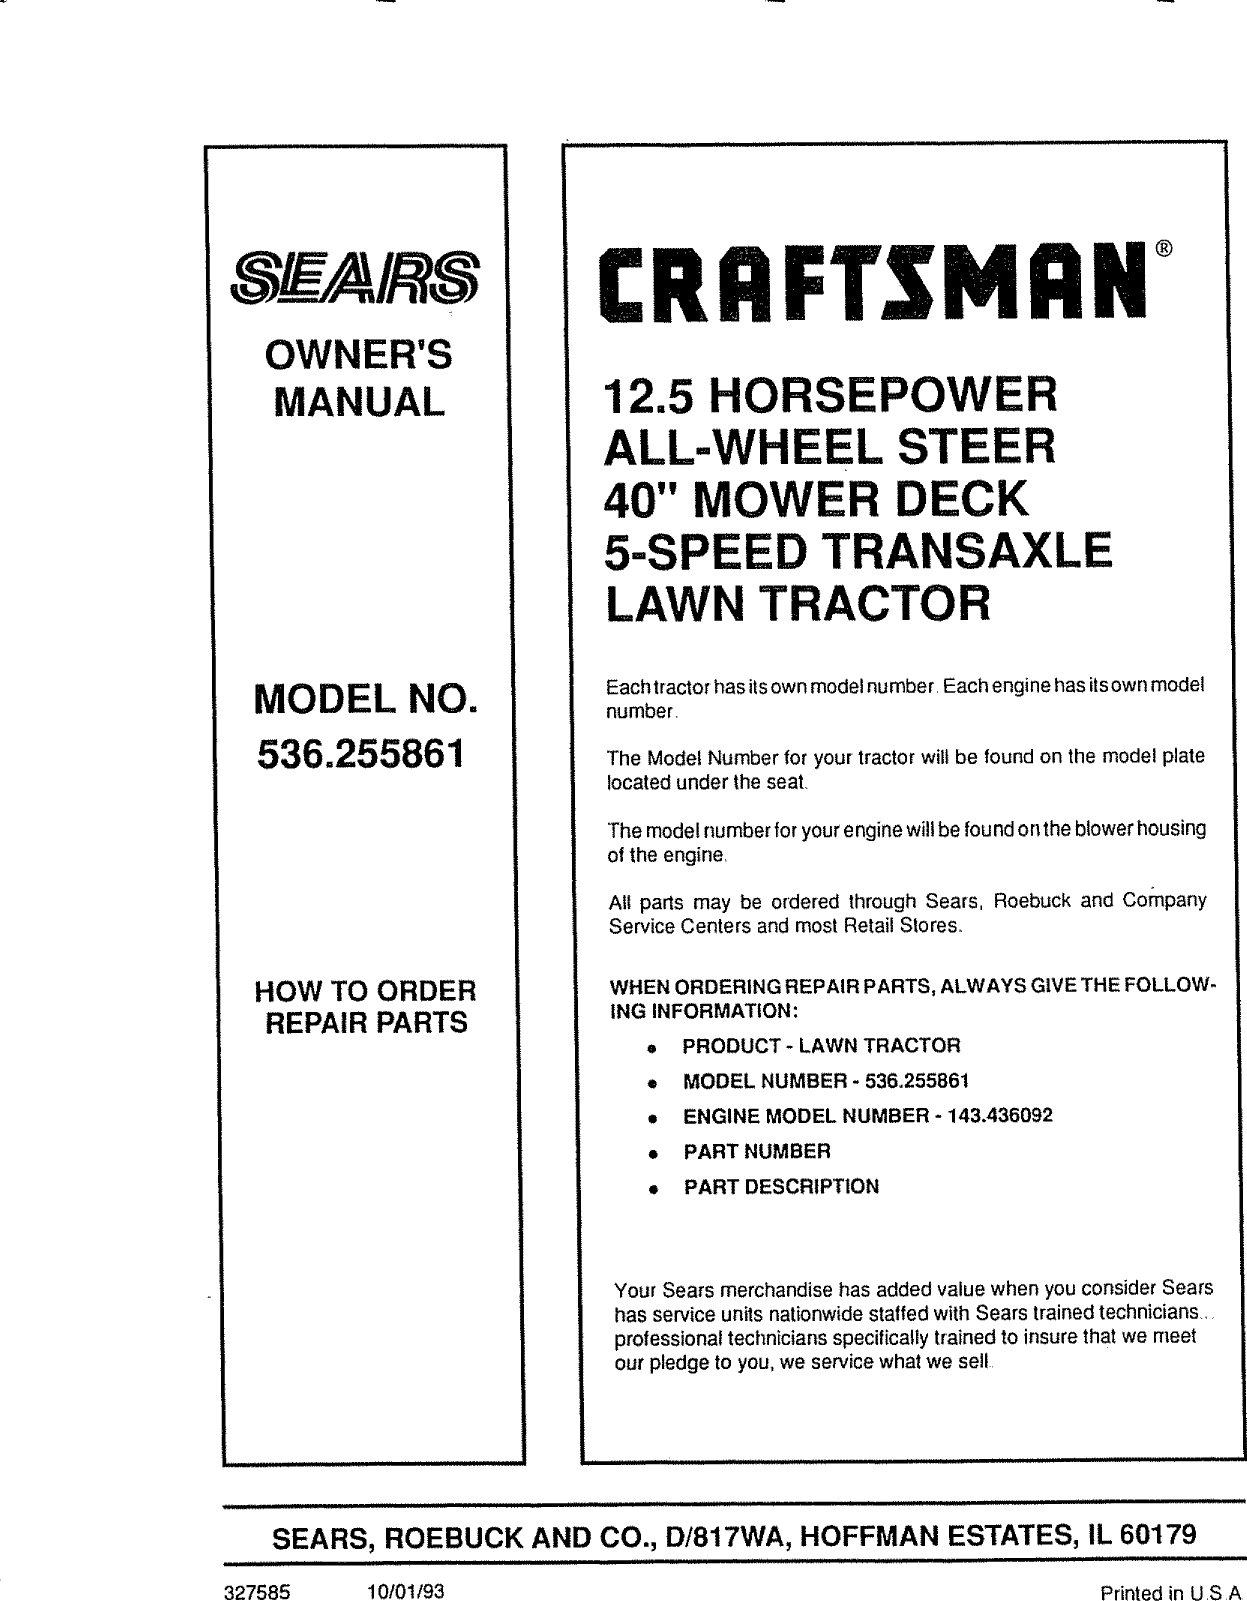 Craftsman 536255861 User Manual Lawn, Tractor Manuals And